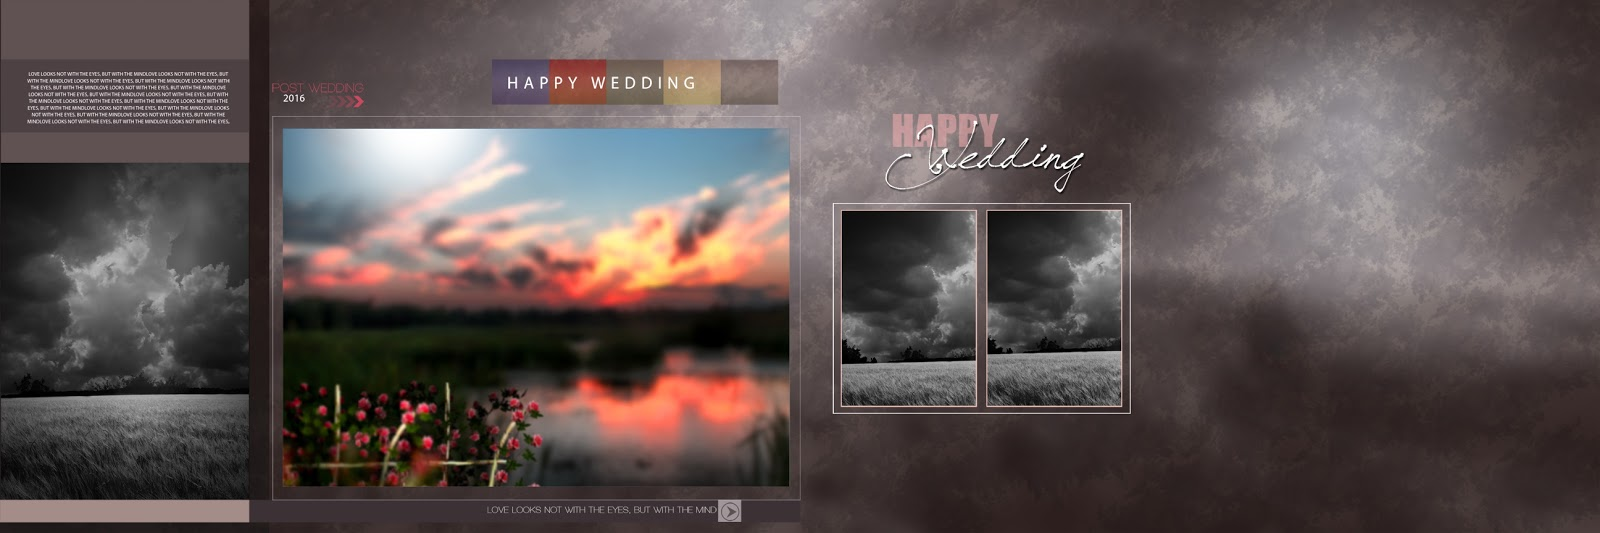 PSD WEDDING PHOTO ALBUM DESIGN TEMPLATES: Photoshop background (PSD ...